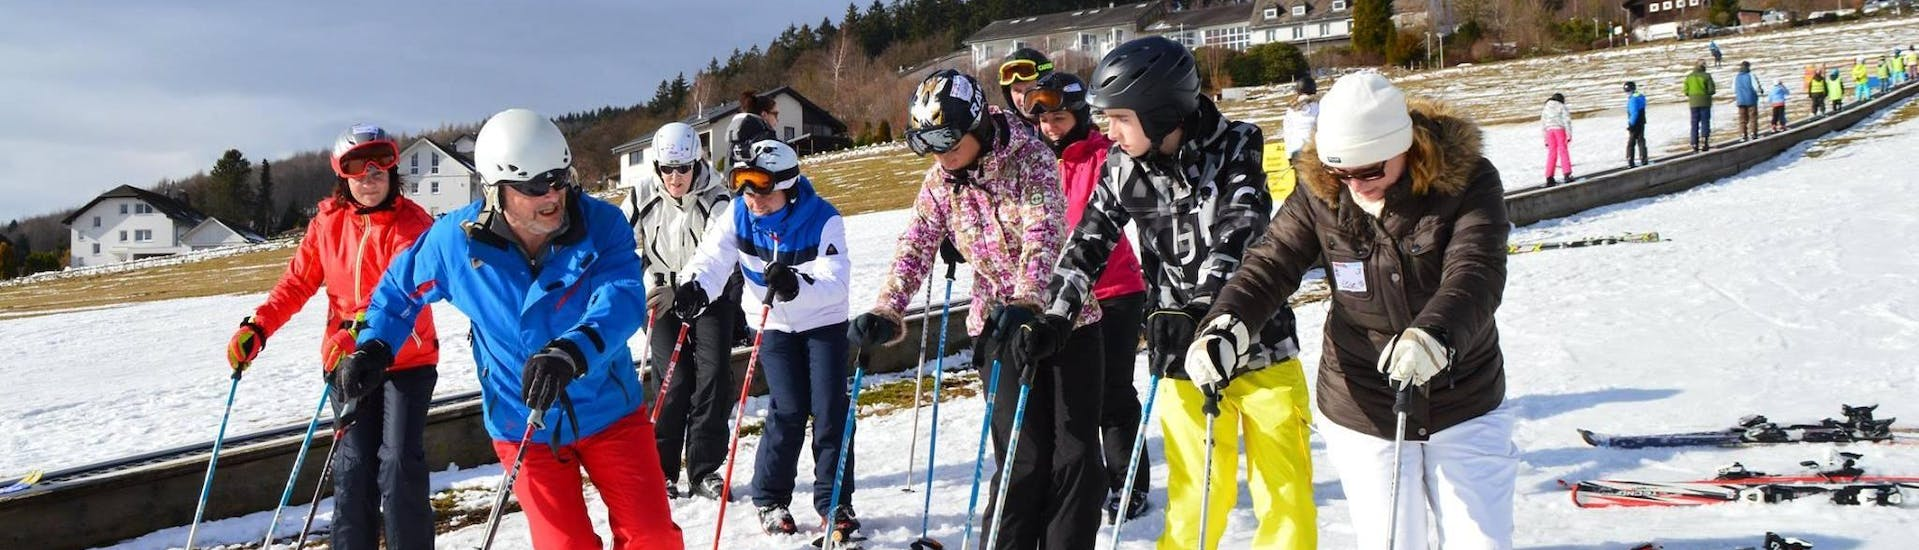 A ski instructor from WIWA | DSV Skischule & Skiverleih is teaching adults the basics of skiing during the Ski Lessons for Teens & Adults - All Levels.